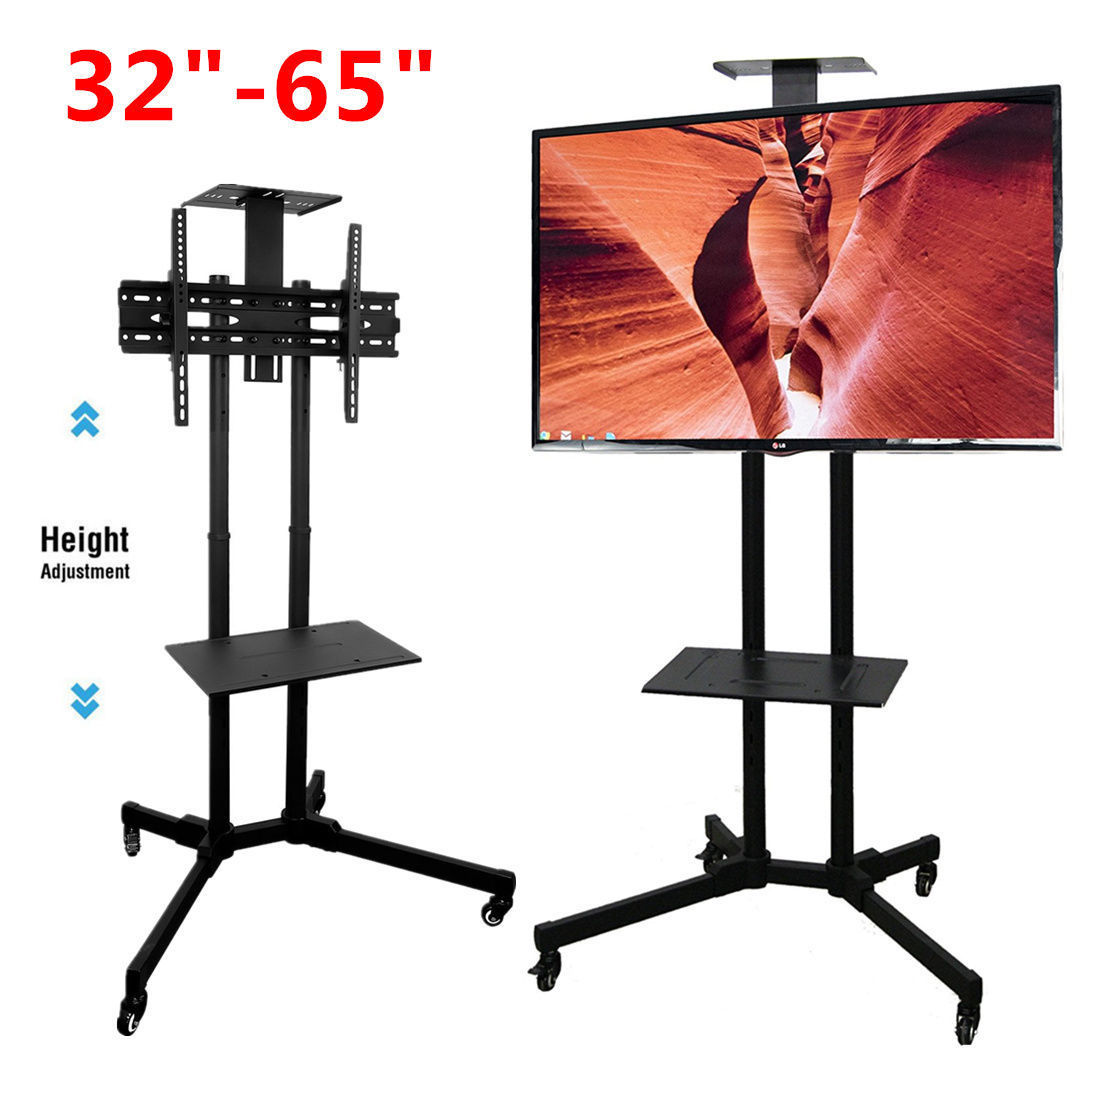 Stable TV Mobile Rack Stand Holder with Wheels for LCD LED Plasma Flat Panels Fit For 32inch to 65inch